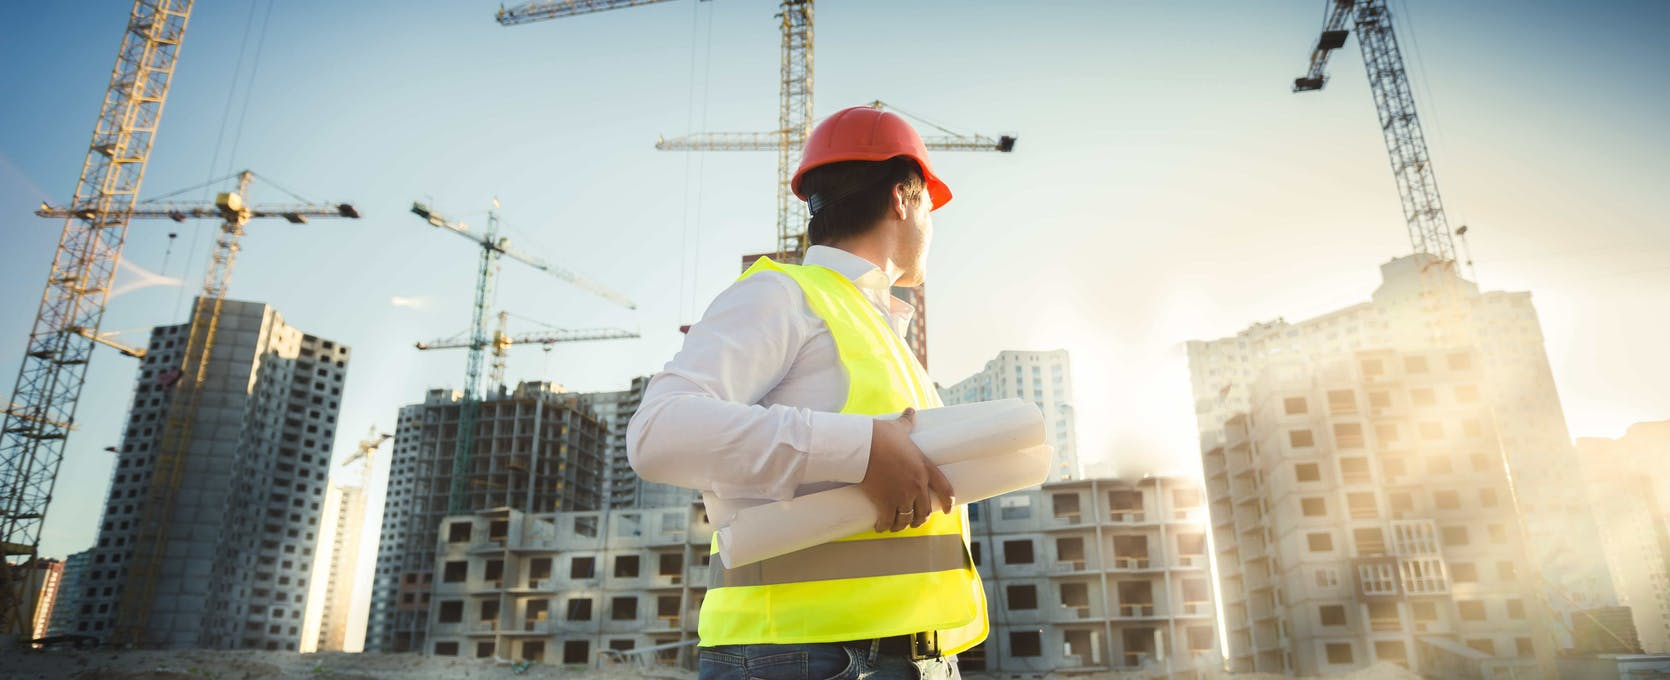 Construction industry professional overseeing a commercial construction project